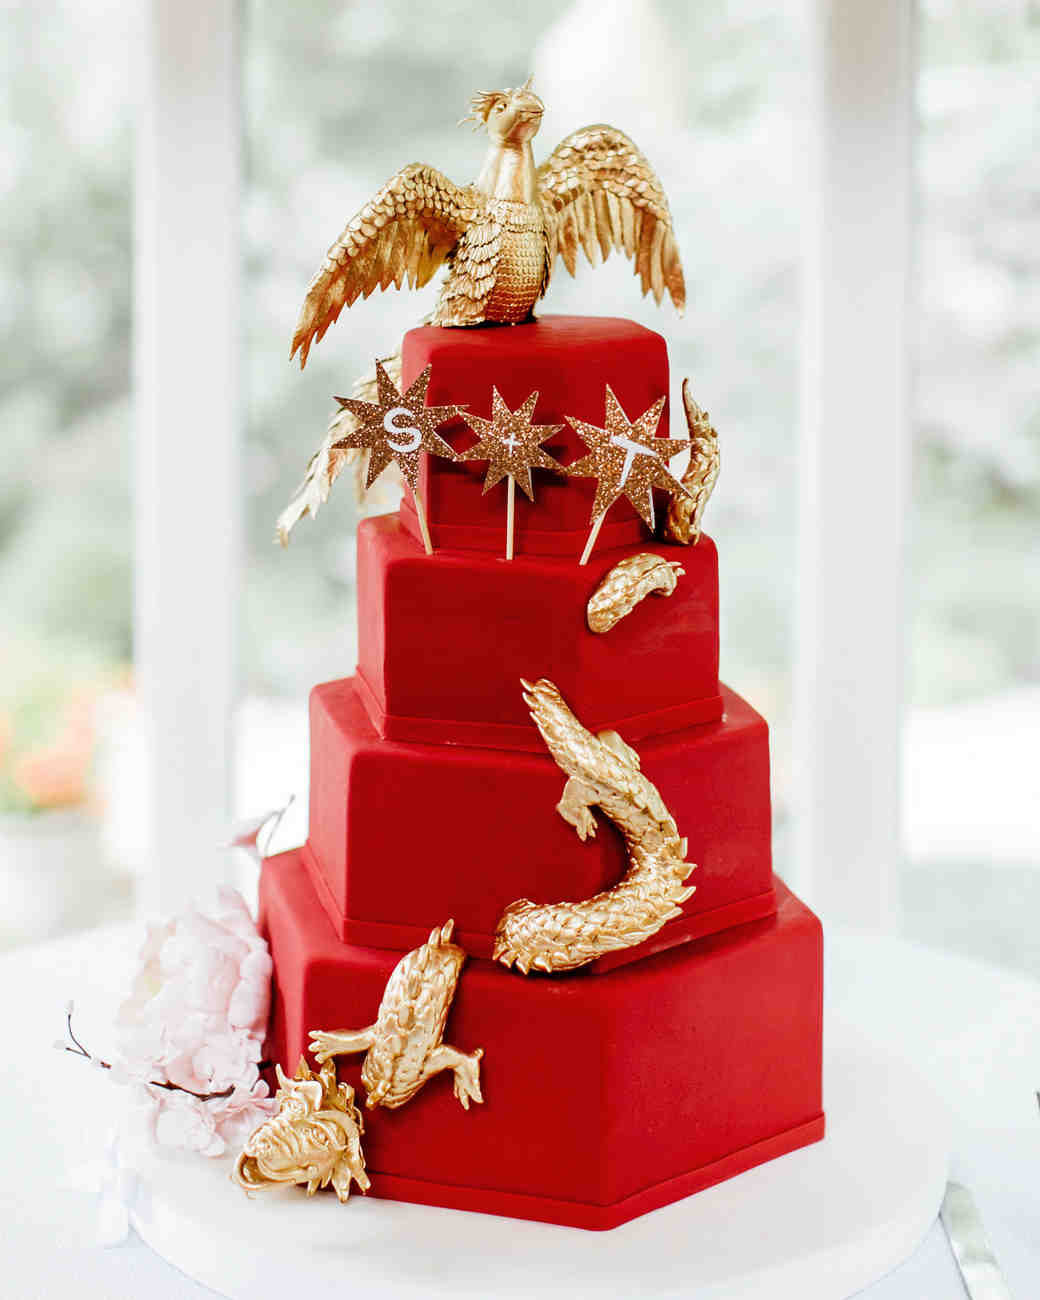 32 Amazing Wedding Cakes You Have to See to Believe Martha Stewart